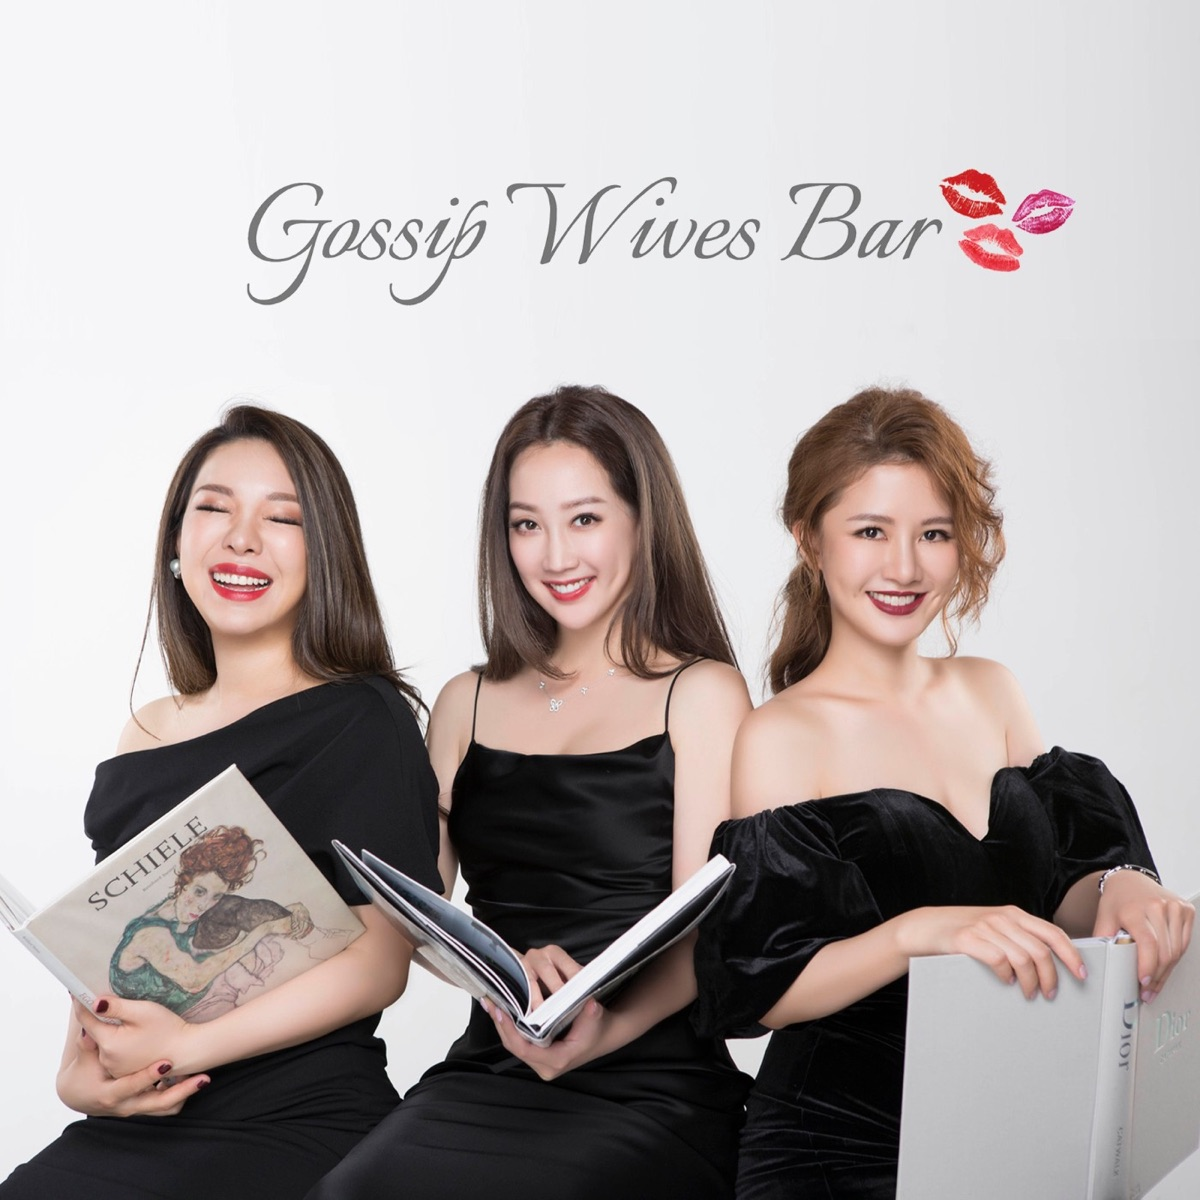 人妻療心吧 Gossip Wives Bar